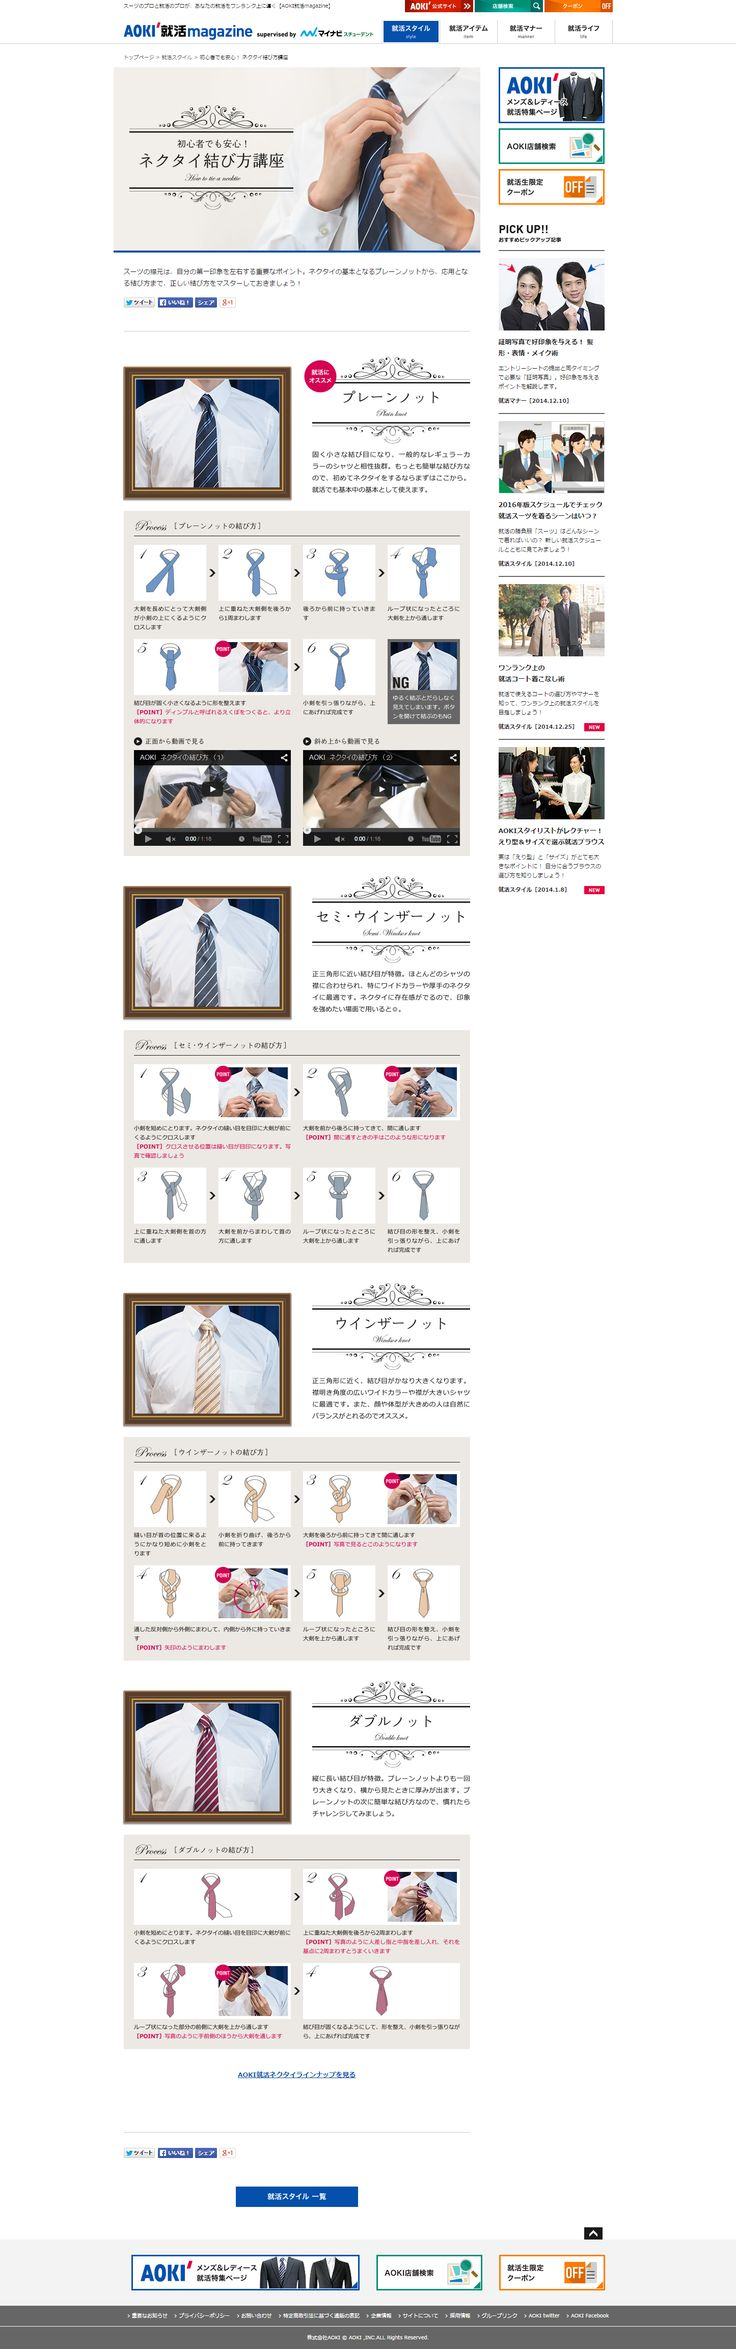 就活スタイル「初心者でも安心! ネクタイ結び方講座」  http://www.aoki-style.com/campaign/recruit/magazine/pc/style/s_04/index.html?re_adpcnt=3wB_PXd